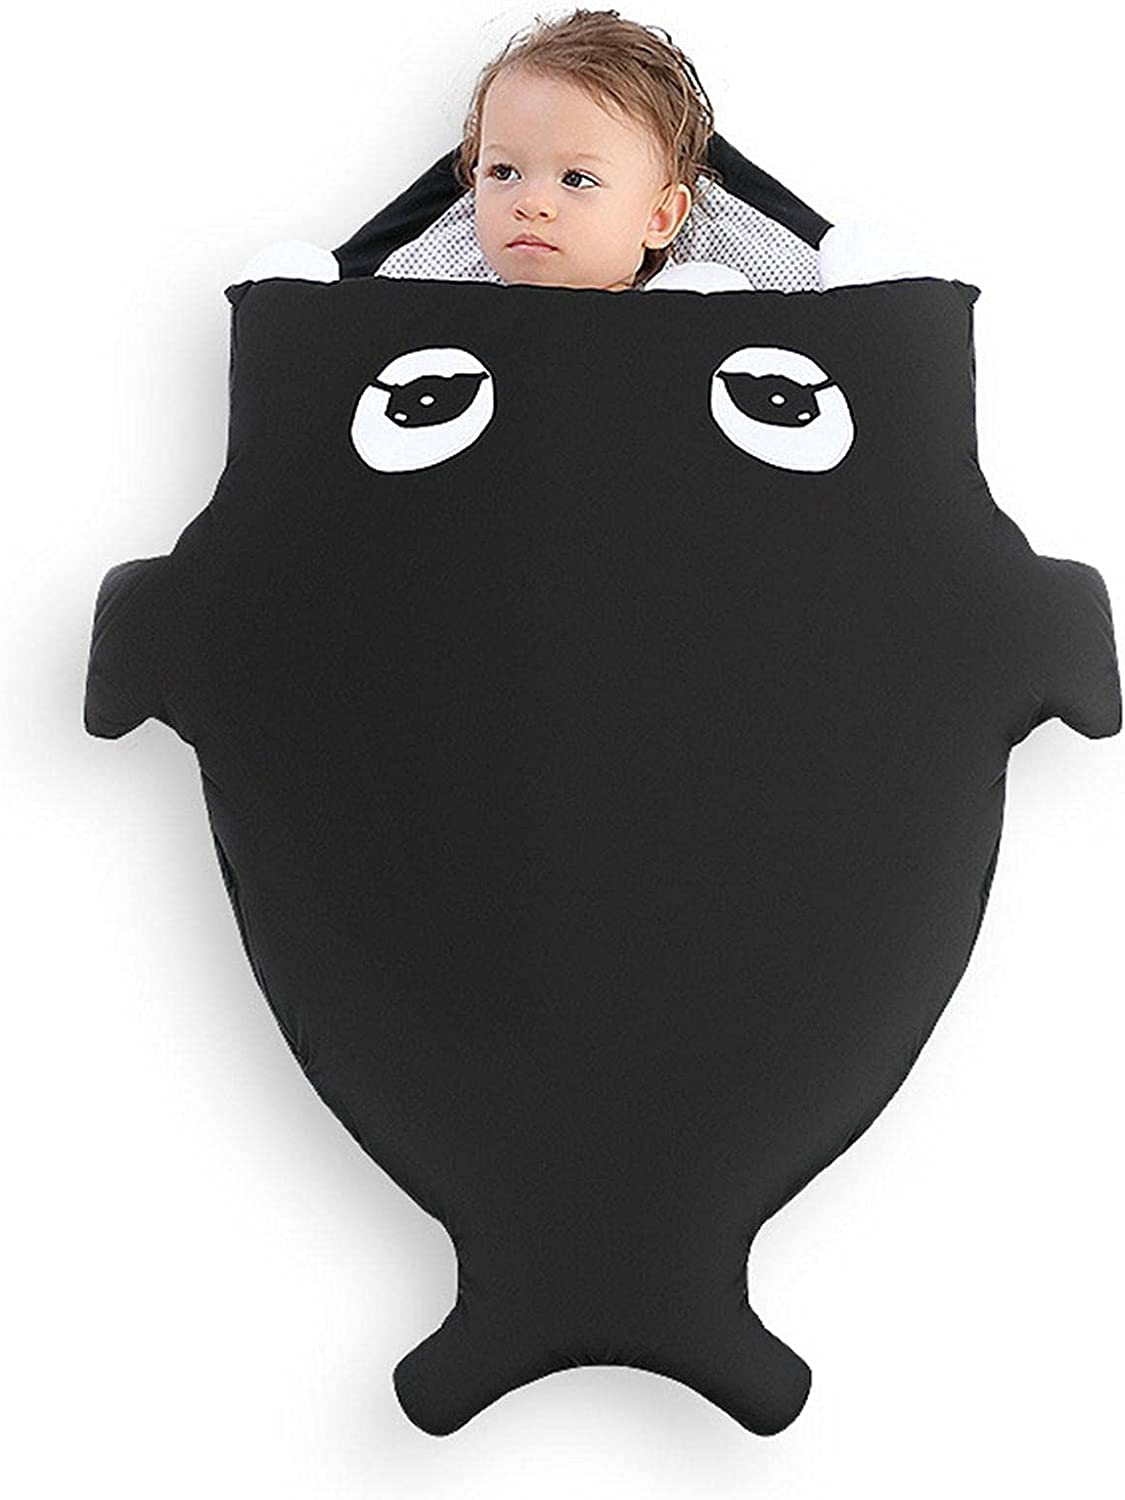 Tinello Baby Overseas parallel import regular item Bunting Max 82% OFF Bag Adjustable Sleeping Toddler U for